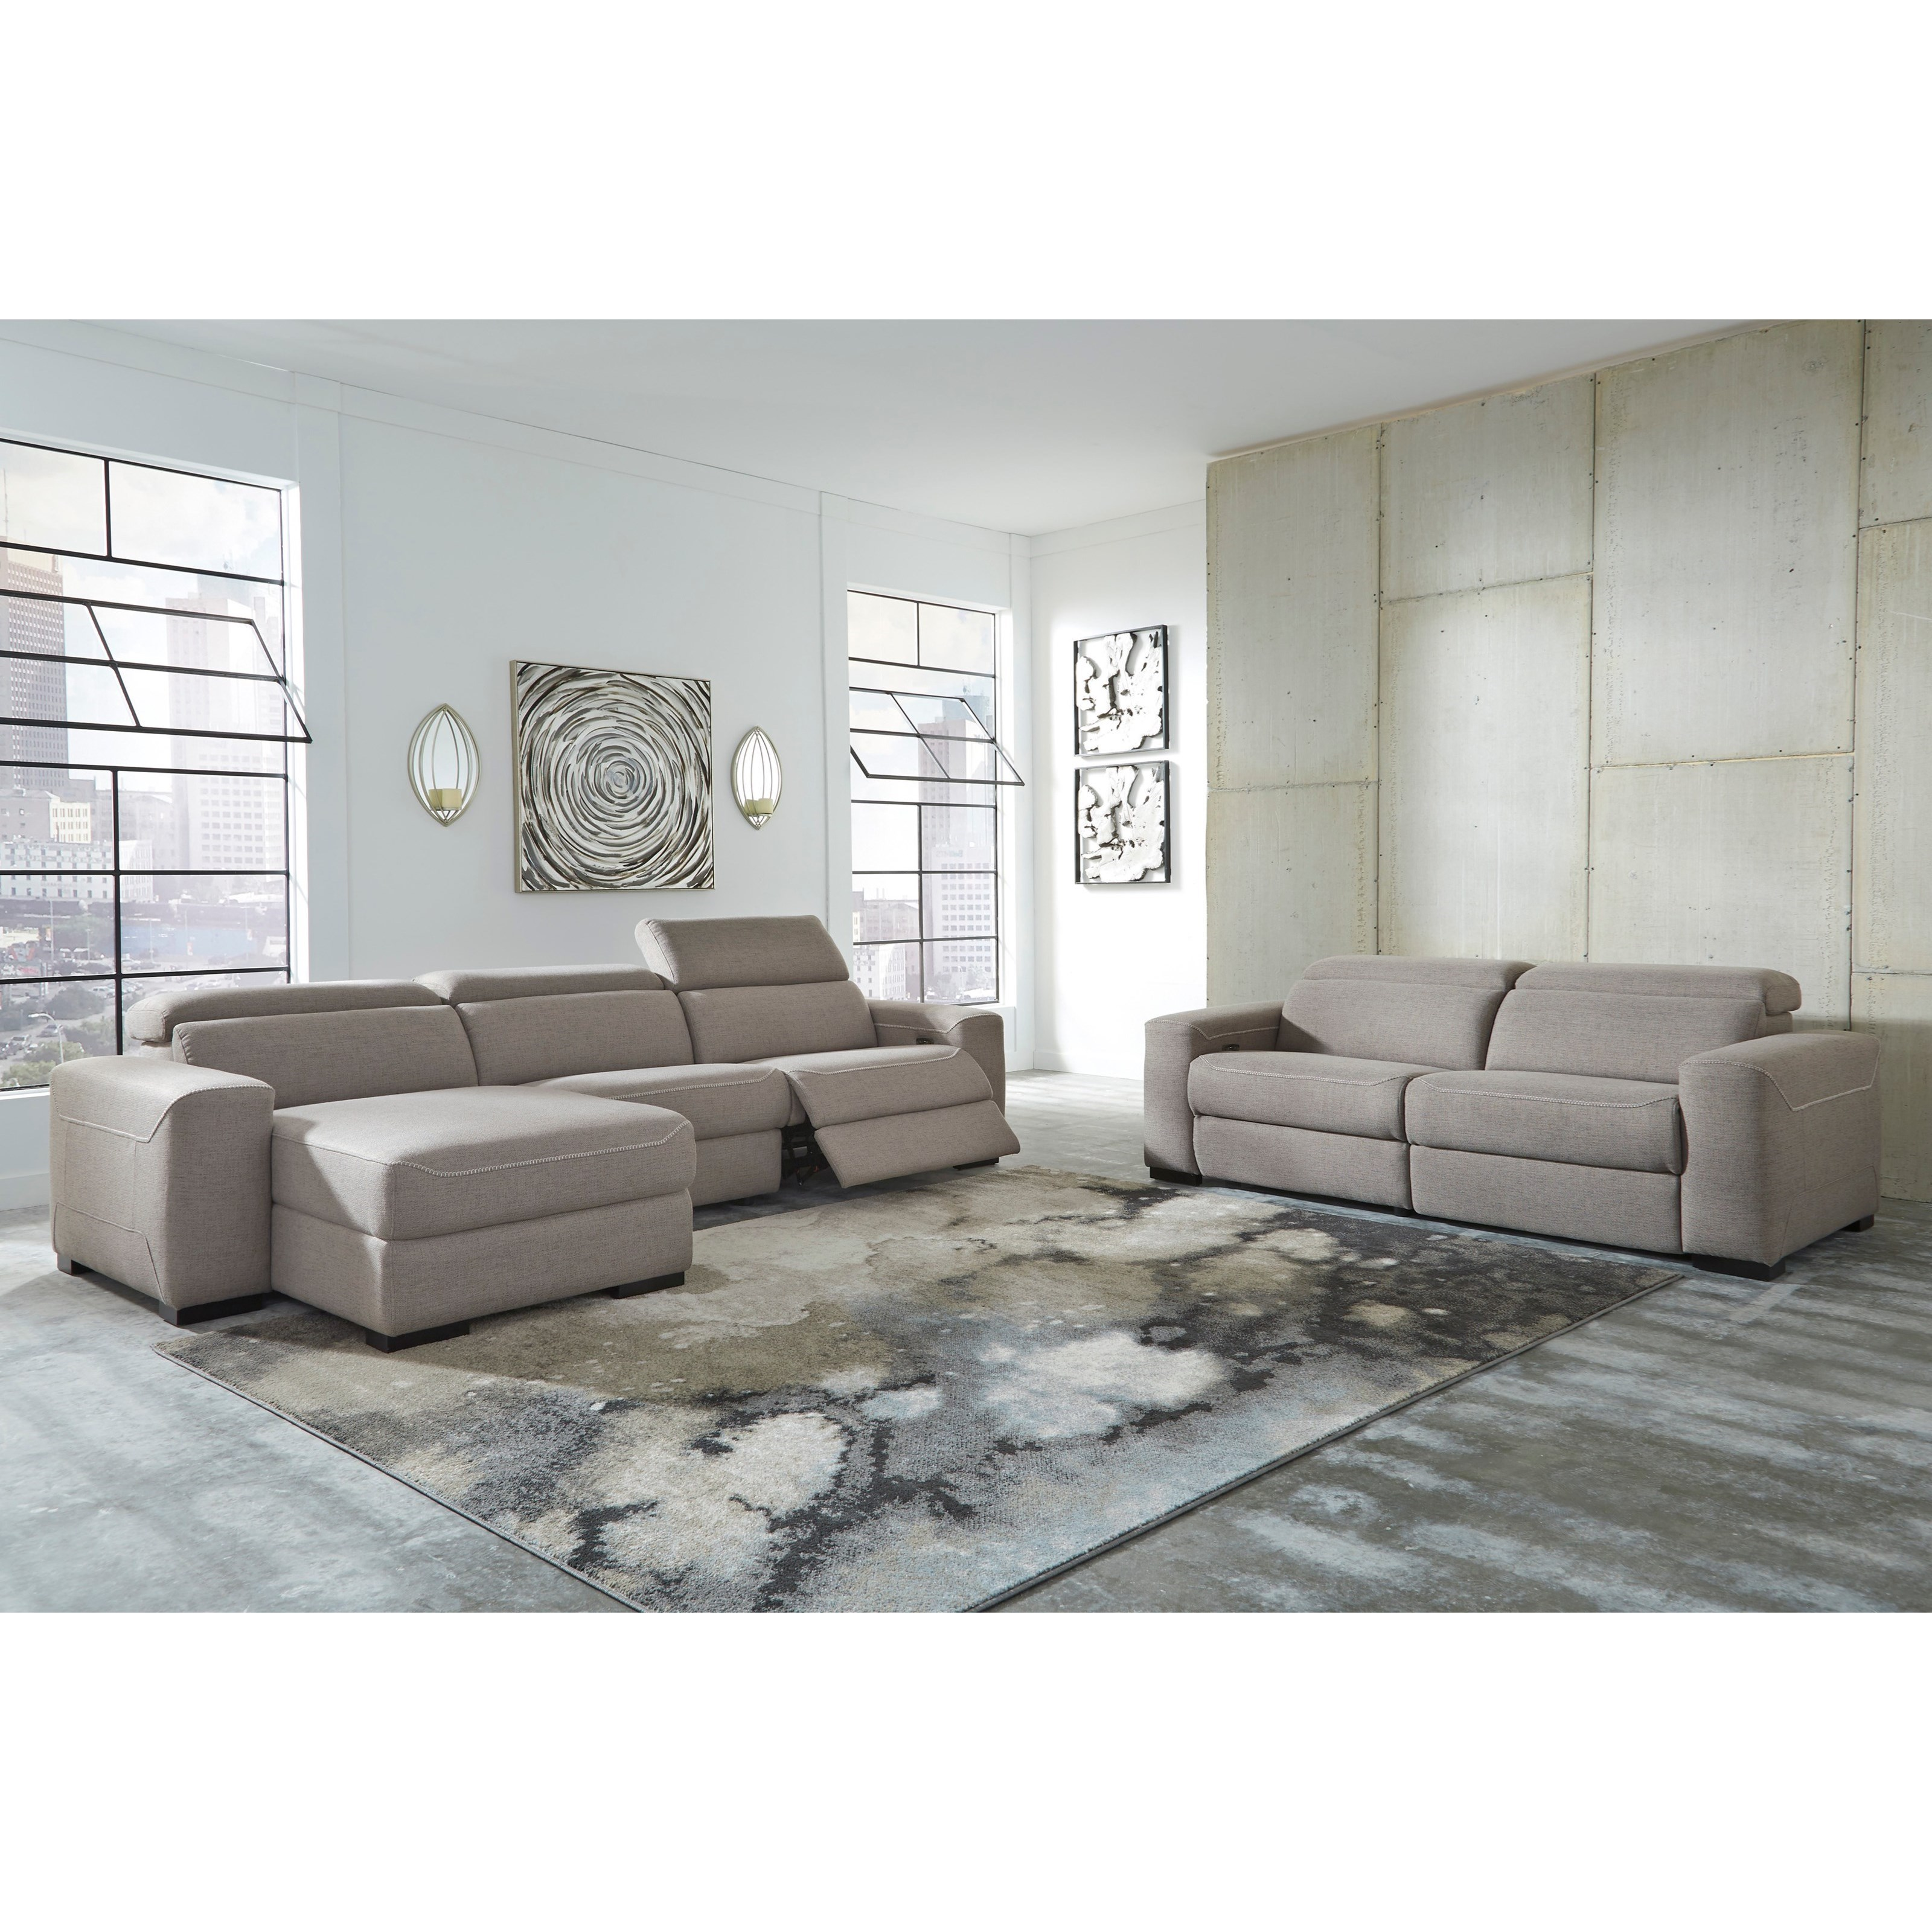 Mabton Power Reclining Living Room Group by Signature Design by Ashley at Zak's Home Outlet